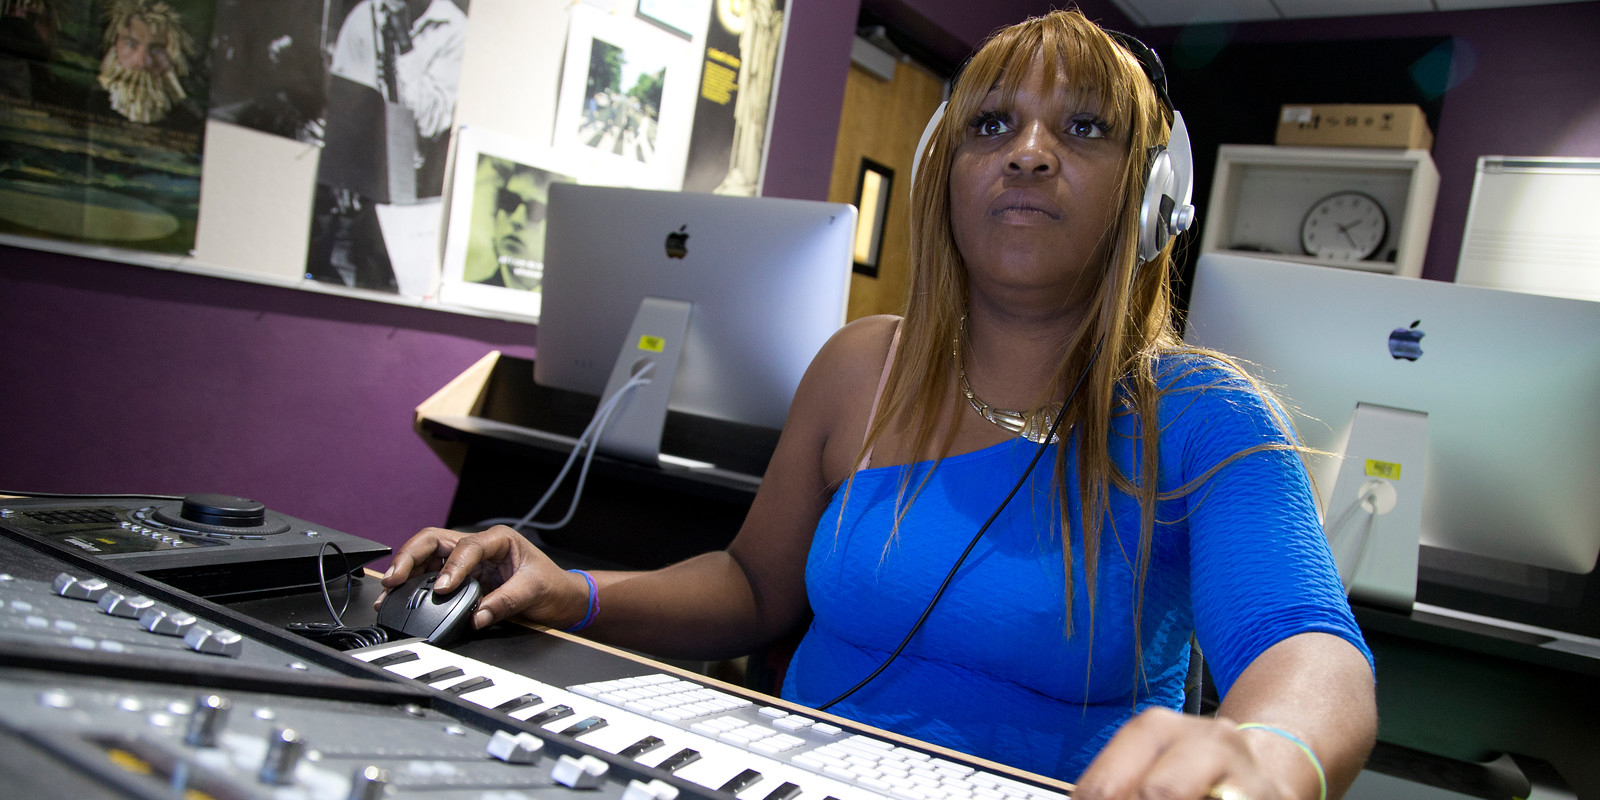 woman in blue shirt works behind a sound board doing audio production and engineering